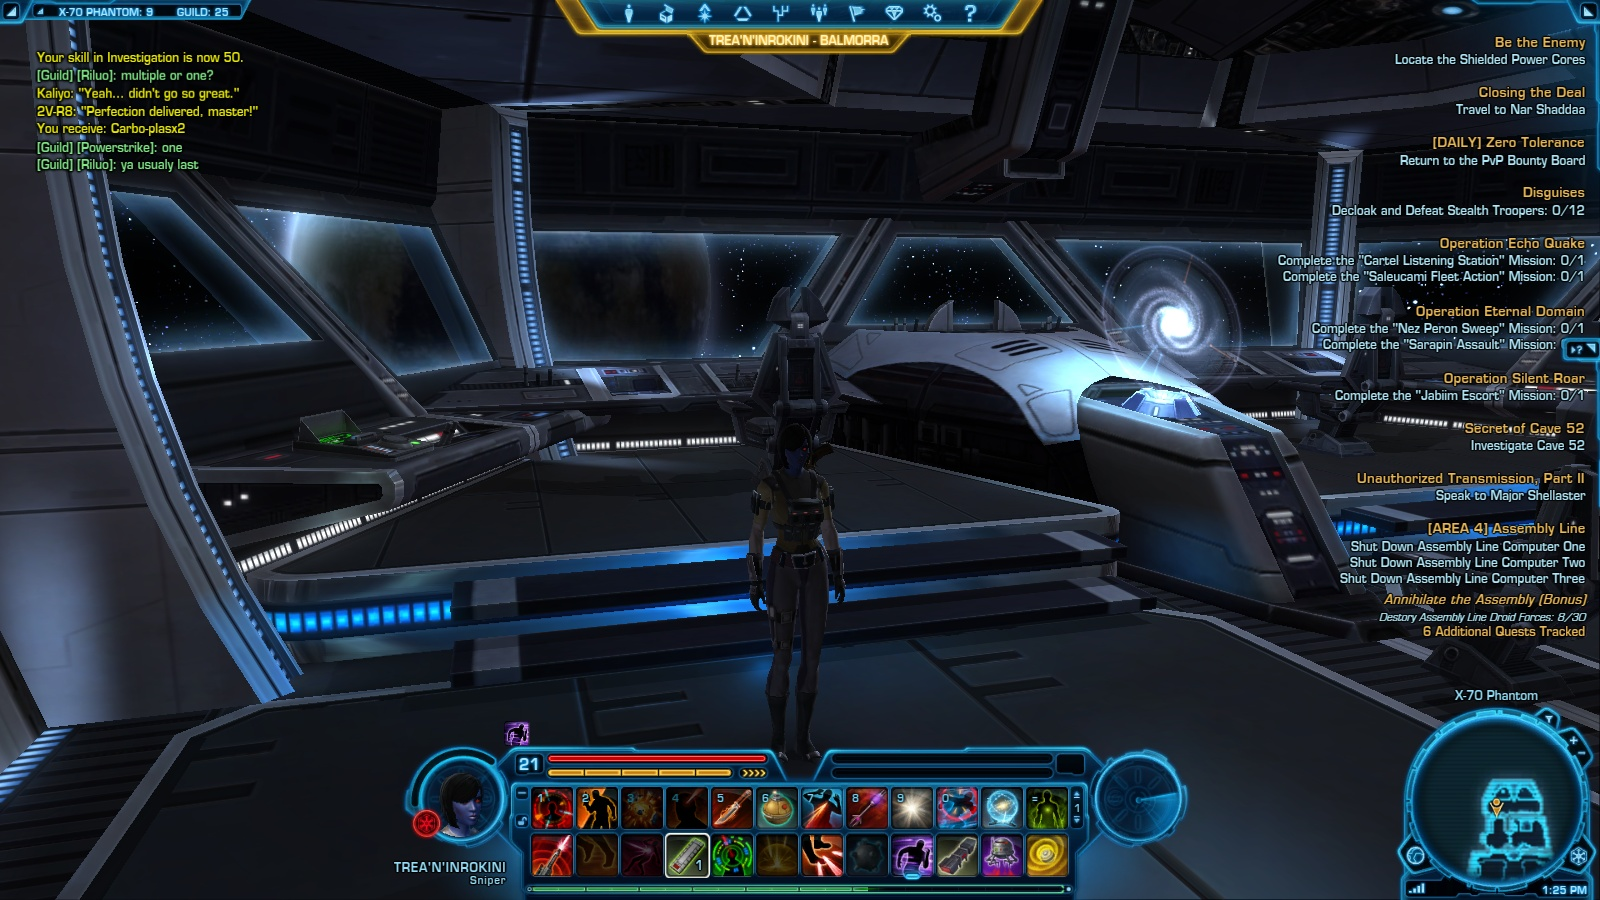 The Galactic Drift: SWTOR: Some screenshots of my characters on swtor companion gifts, swtor schematics guide, swtor get rich, swtor hk-51 customization, swtor sith warrior, swtor skill diagram, swtor jedi consular,